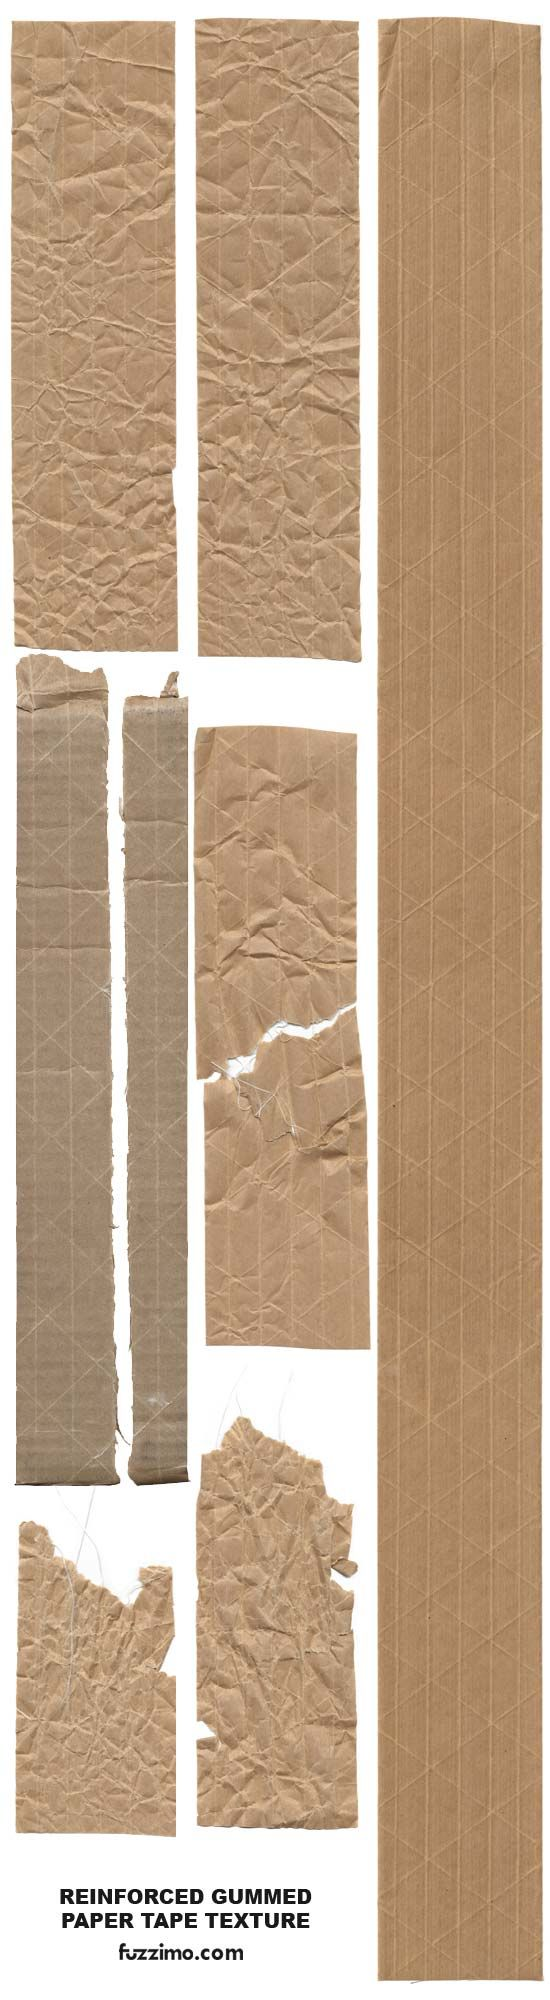 Free Hi-Res Reinforced Paper Tape Textures